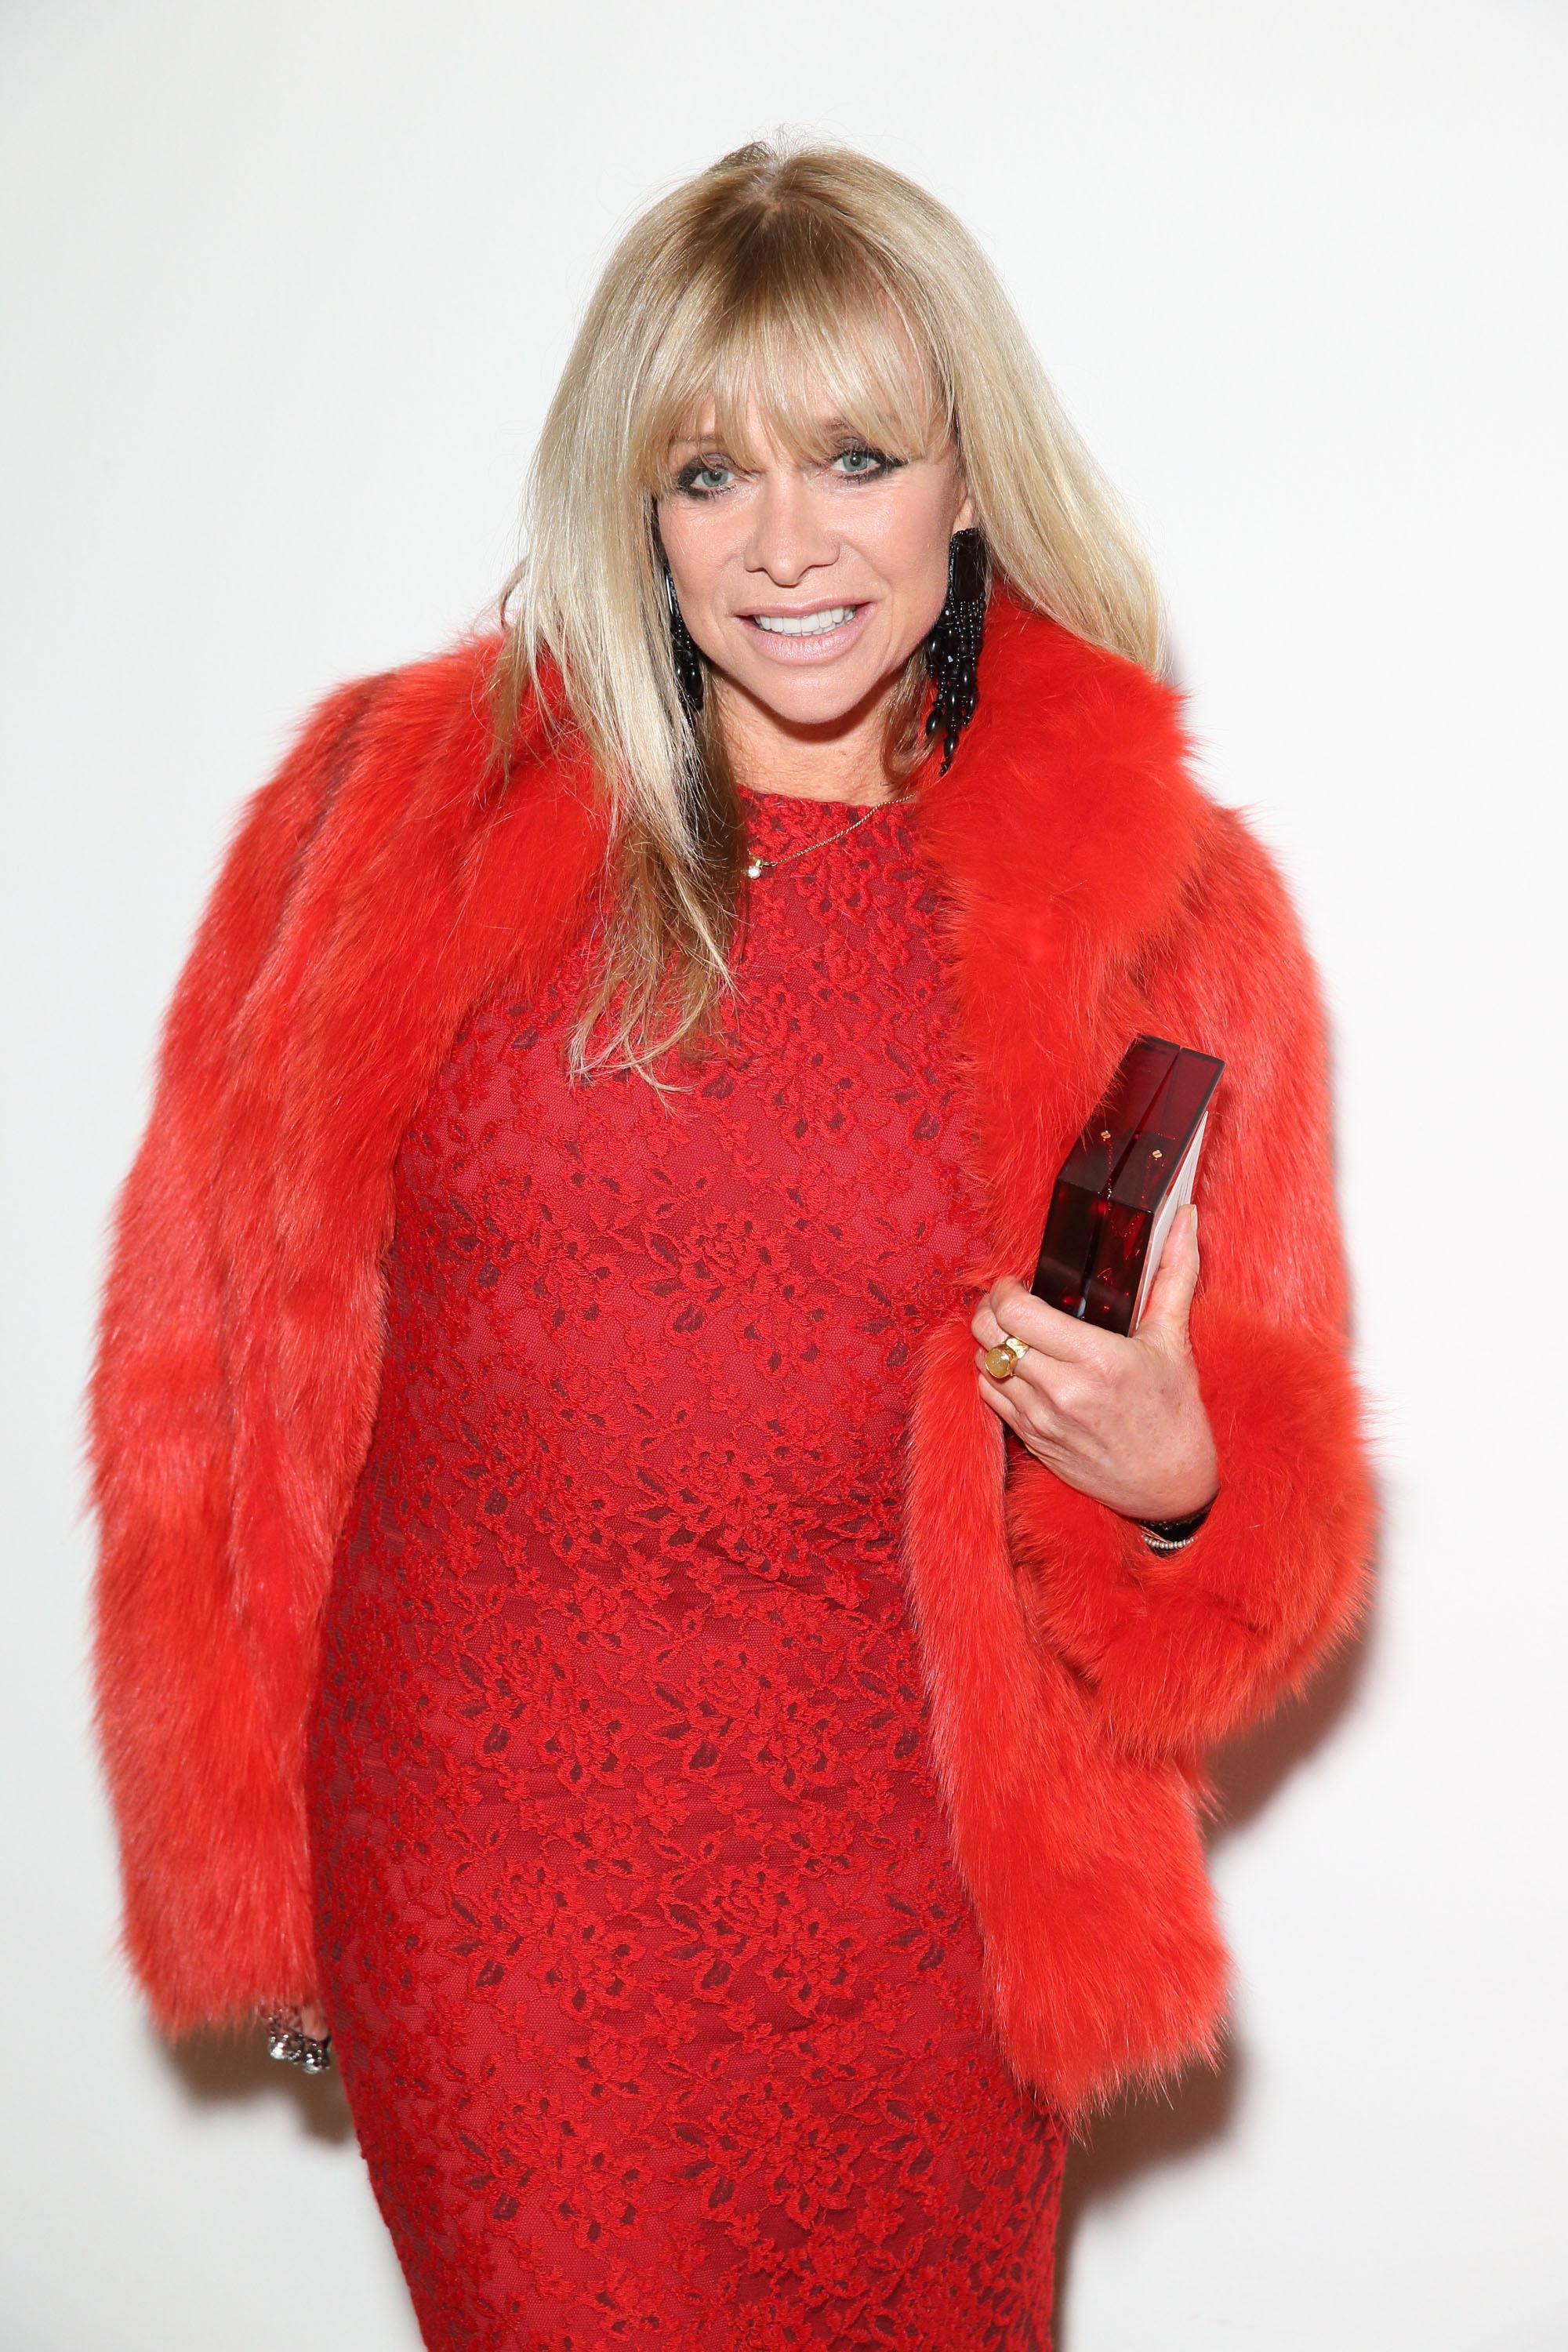 How old is Jo Wood, what's her net worth, when was she married to Rolling Stones' Ronnie and does she have a boyfriend?